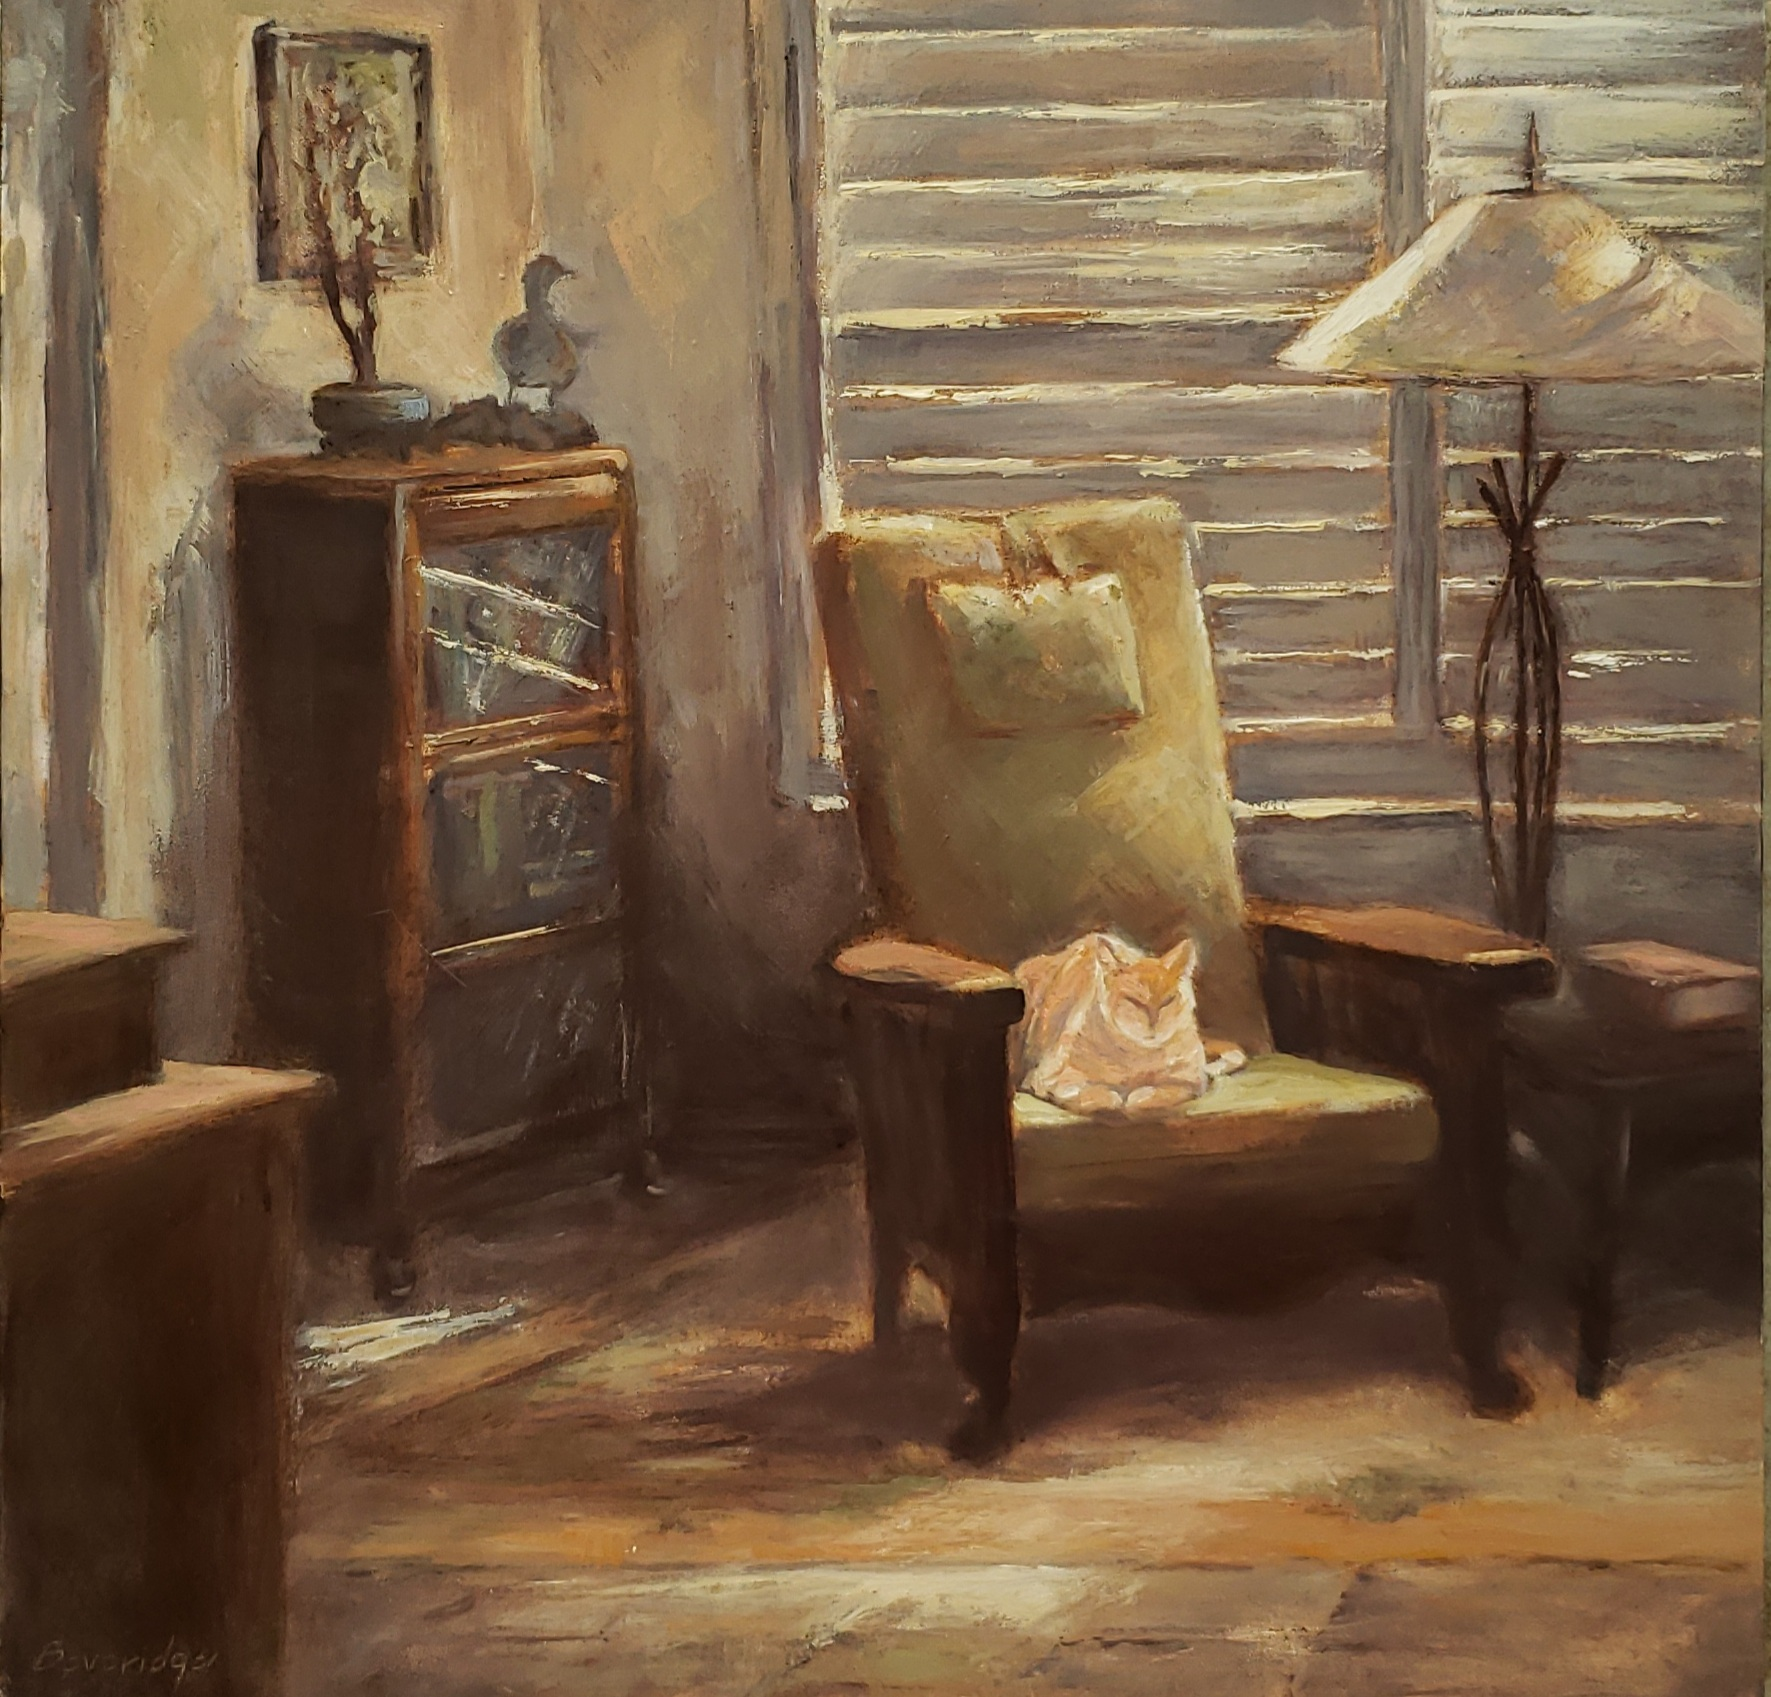 'Solace in the Time of Covid', oil on panel by Gail Beveridge ($500) ⎼ 'Being confined mainly to the house for the past six months, it has helped having my feline friend, Tebow, as a calming influence during these trying times.'